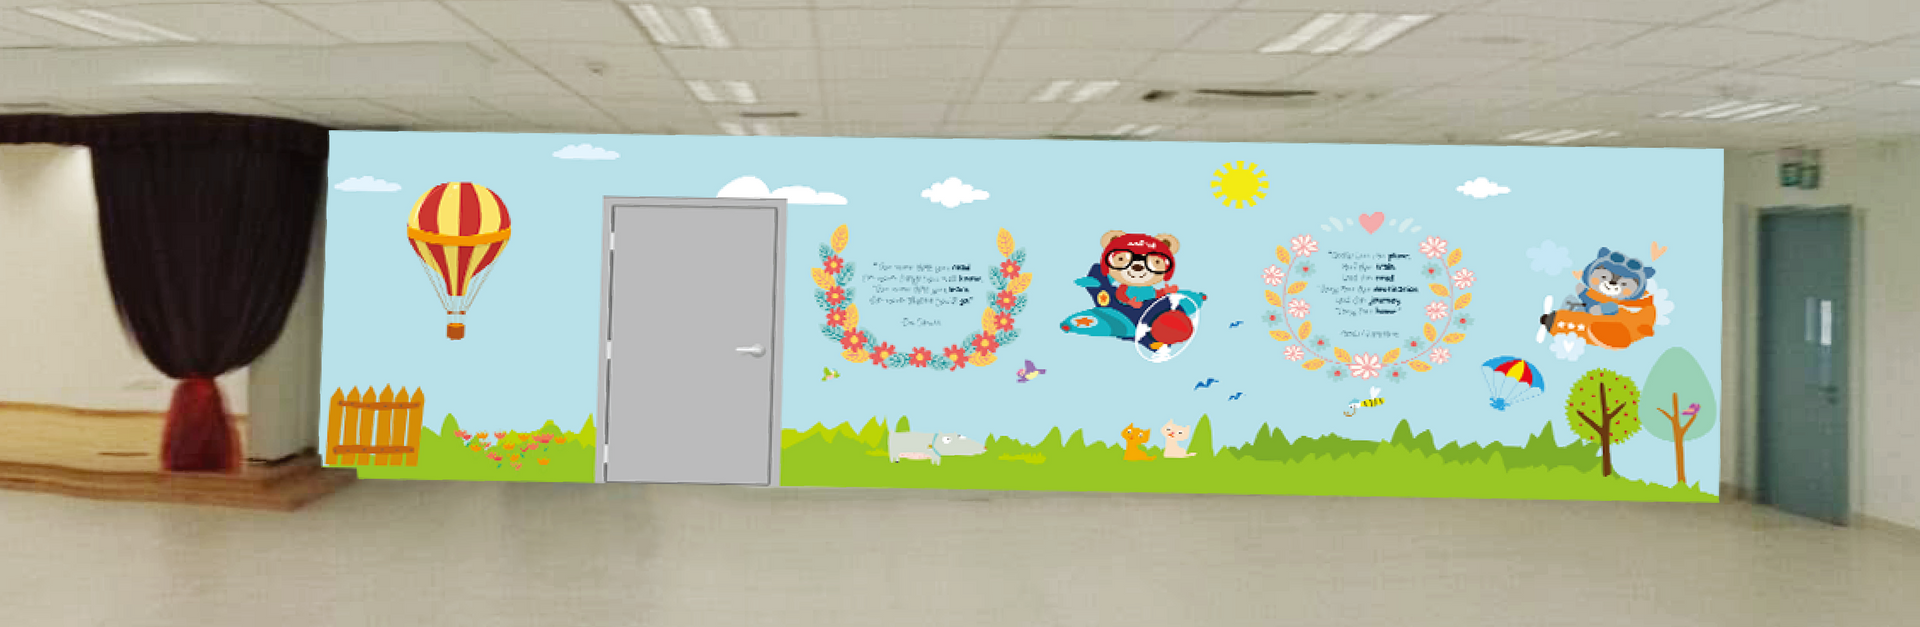 Stamford Primary School Library Wall Mural